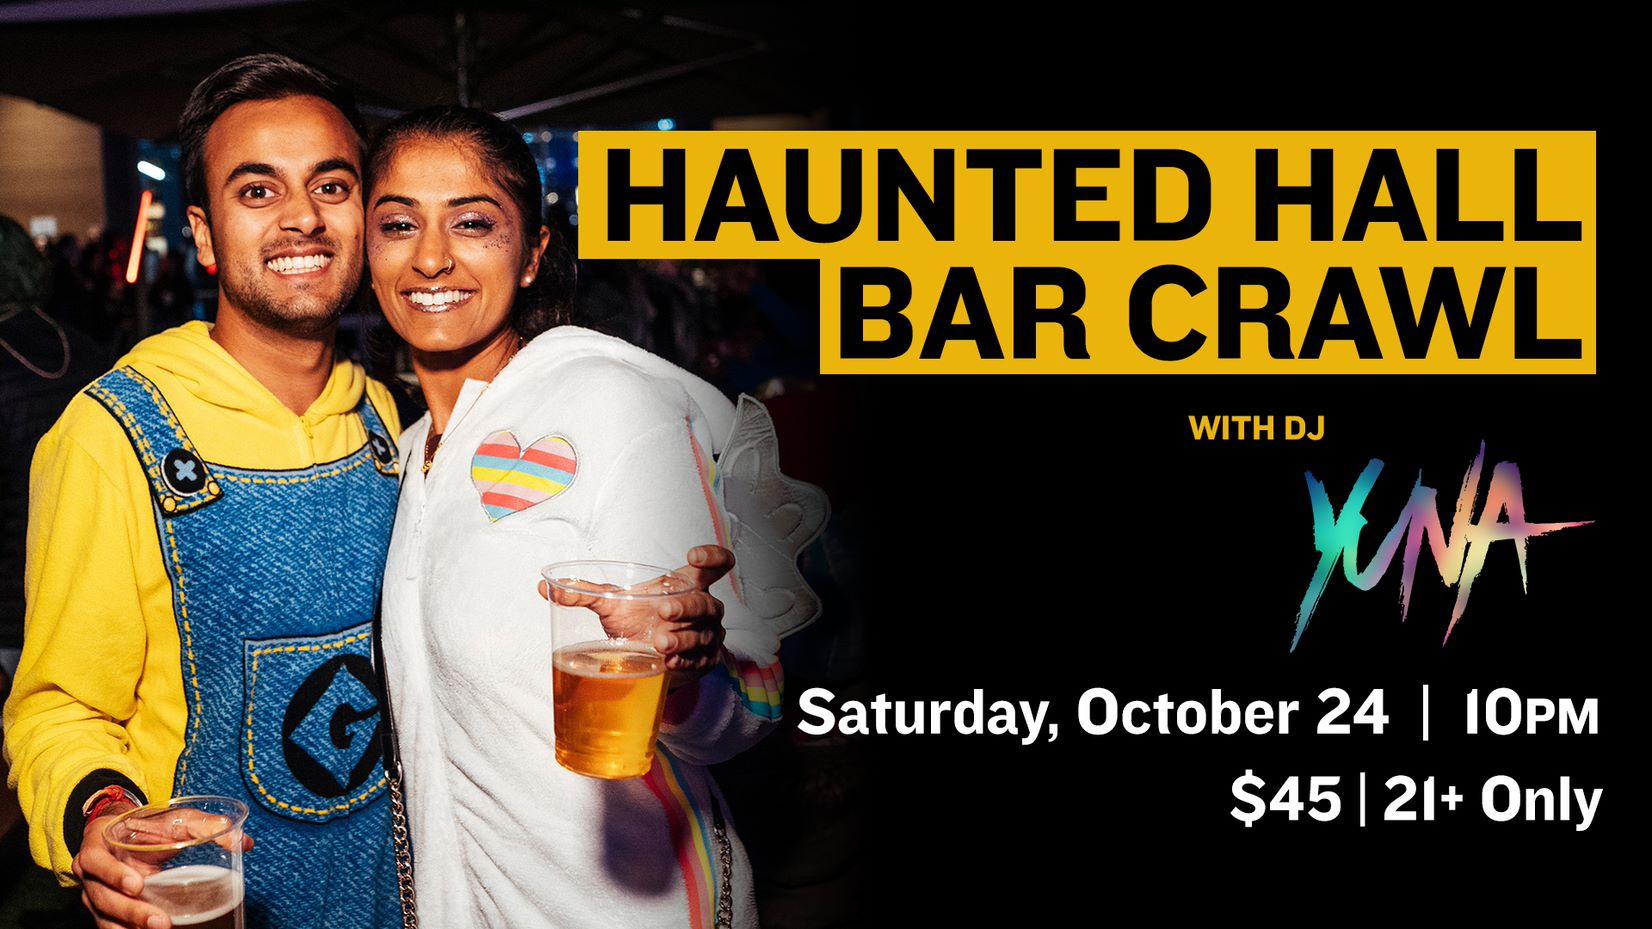 Promo image of Haunted Hall Bar Crawl